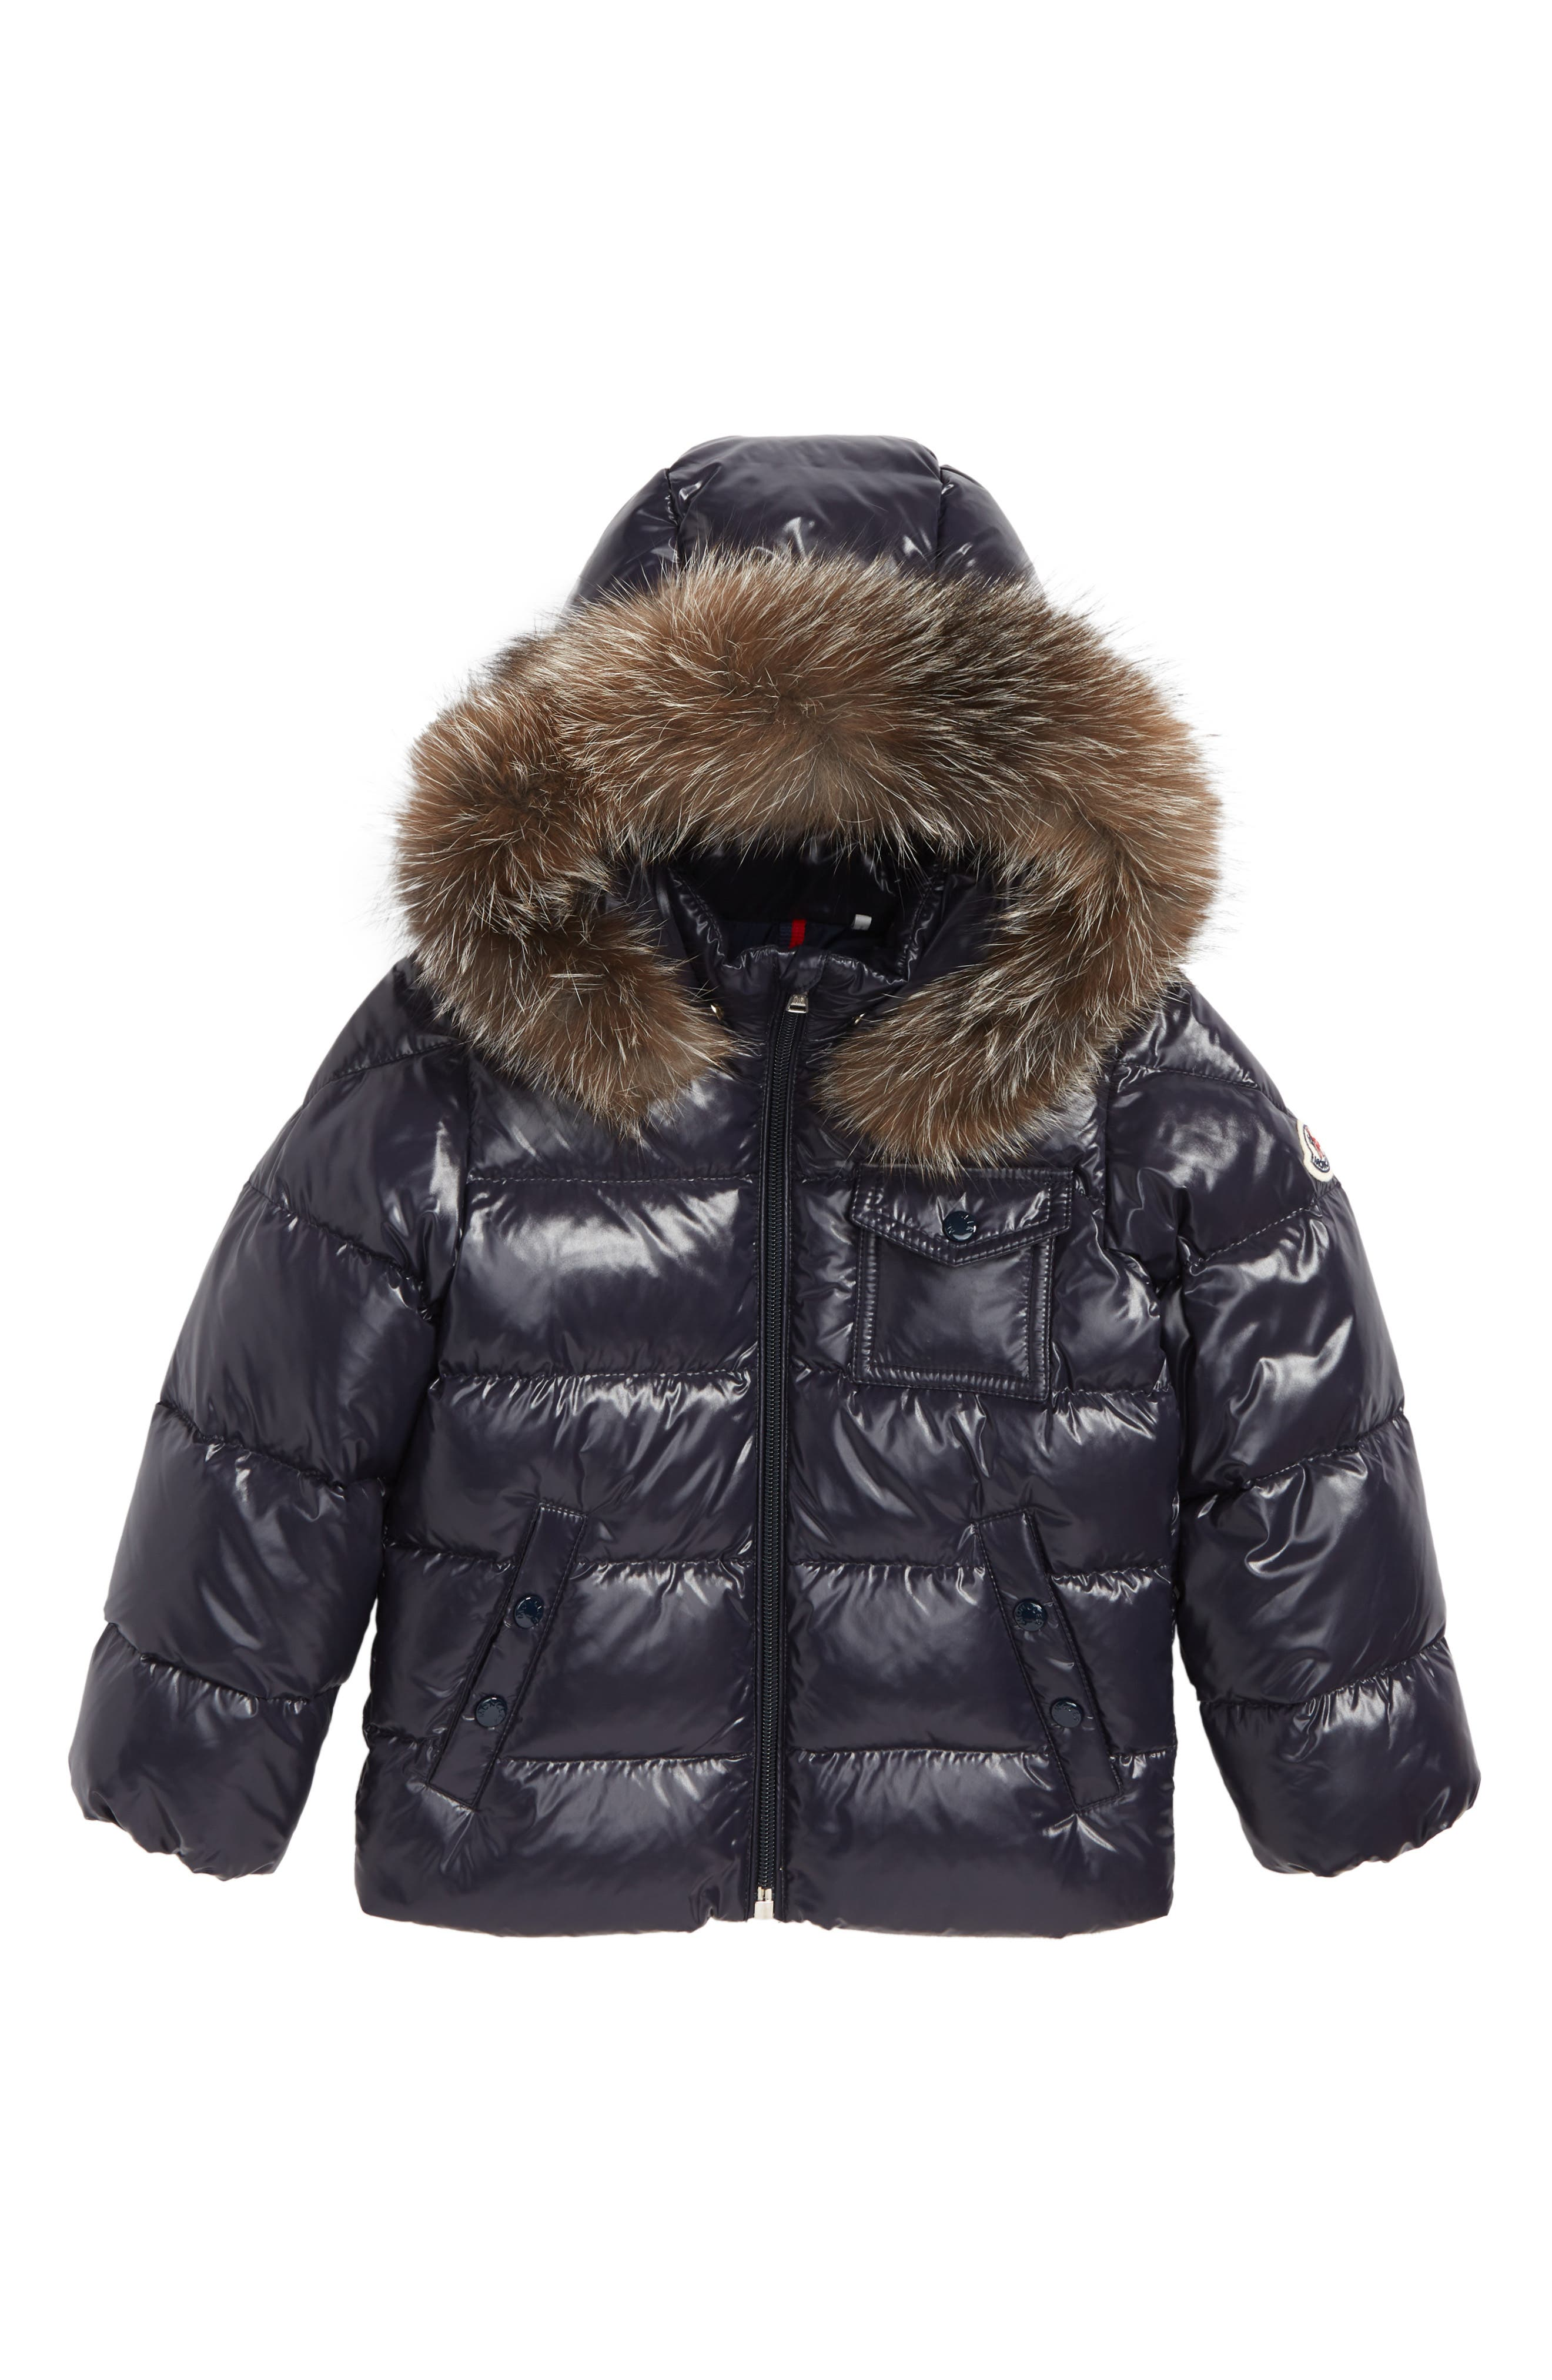 K2 Water Resistant Hooded Down Jacket with Genuine Fox Fur Trim,                         Main,                         color, NAVY